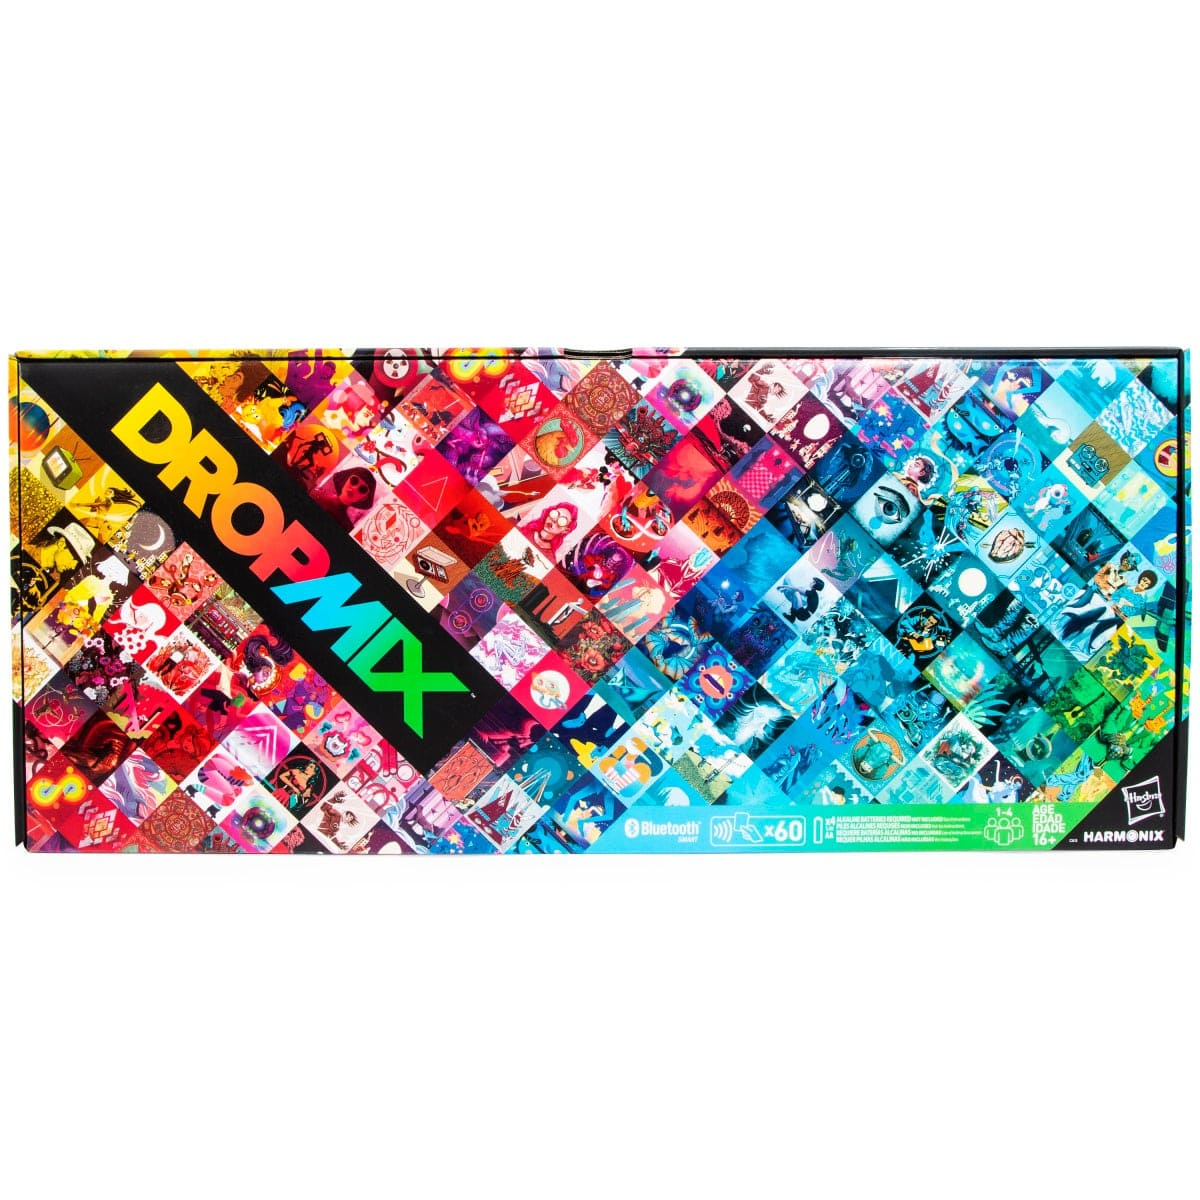 dropmix music game $10 @five below FS over $35